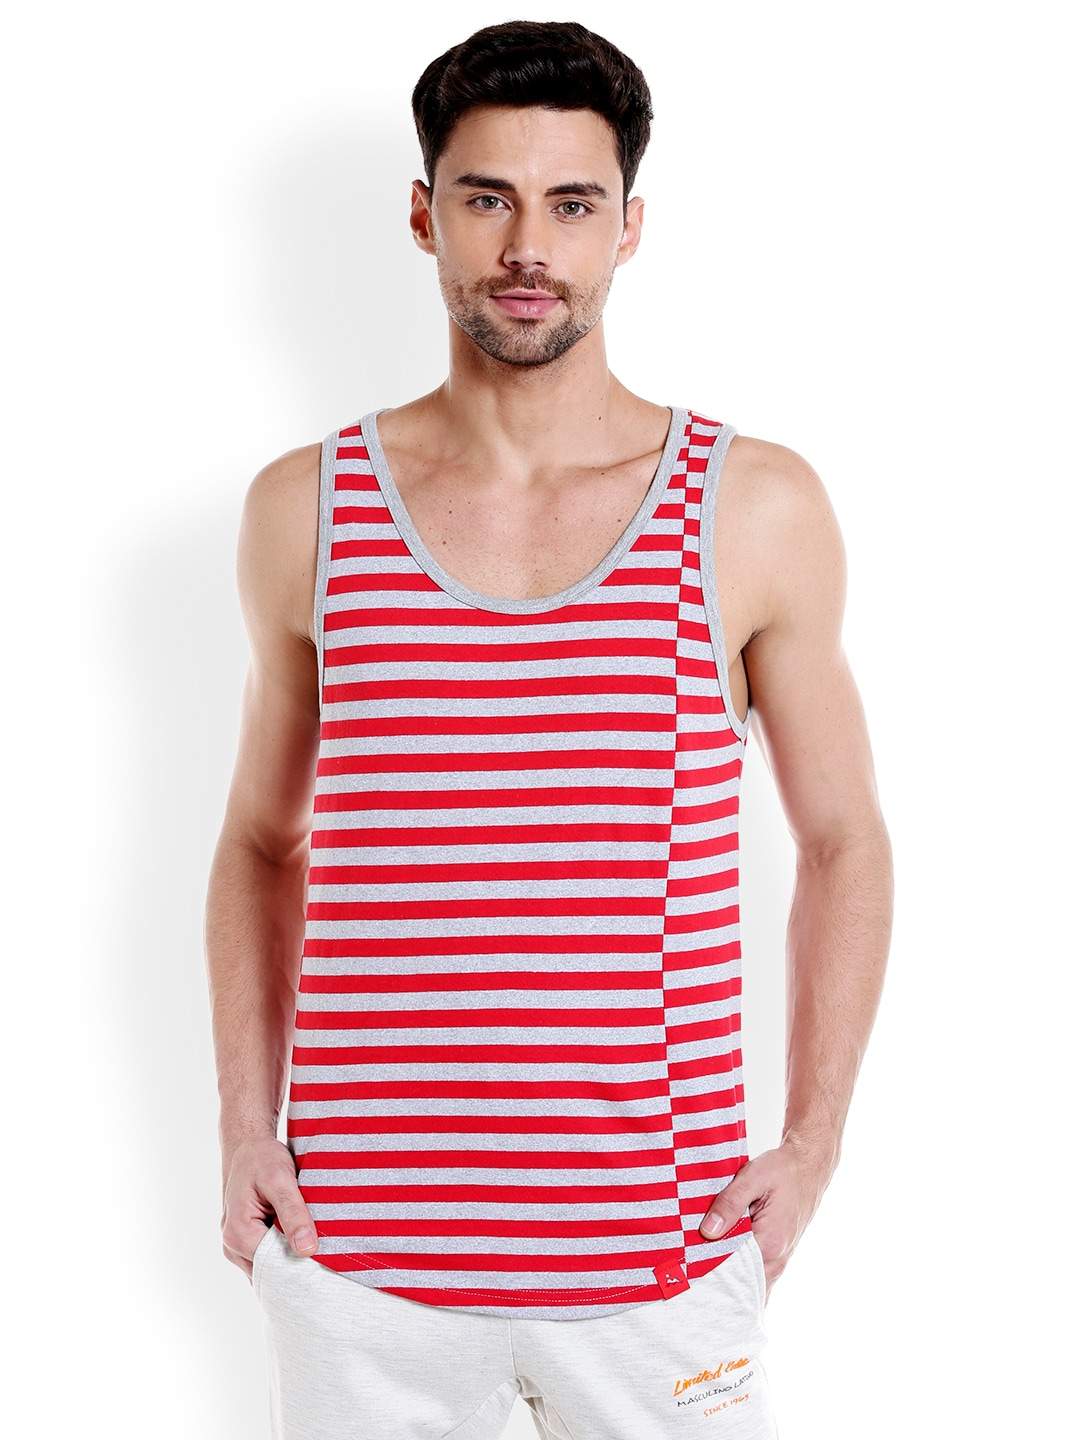 Masculino Latino Men Red & Grey Striped T-shirt MLF4030-C image